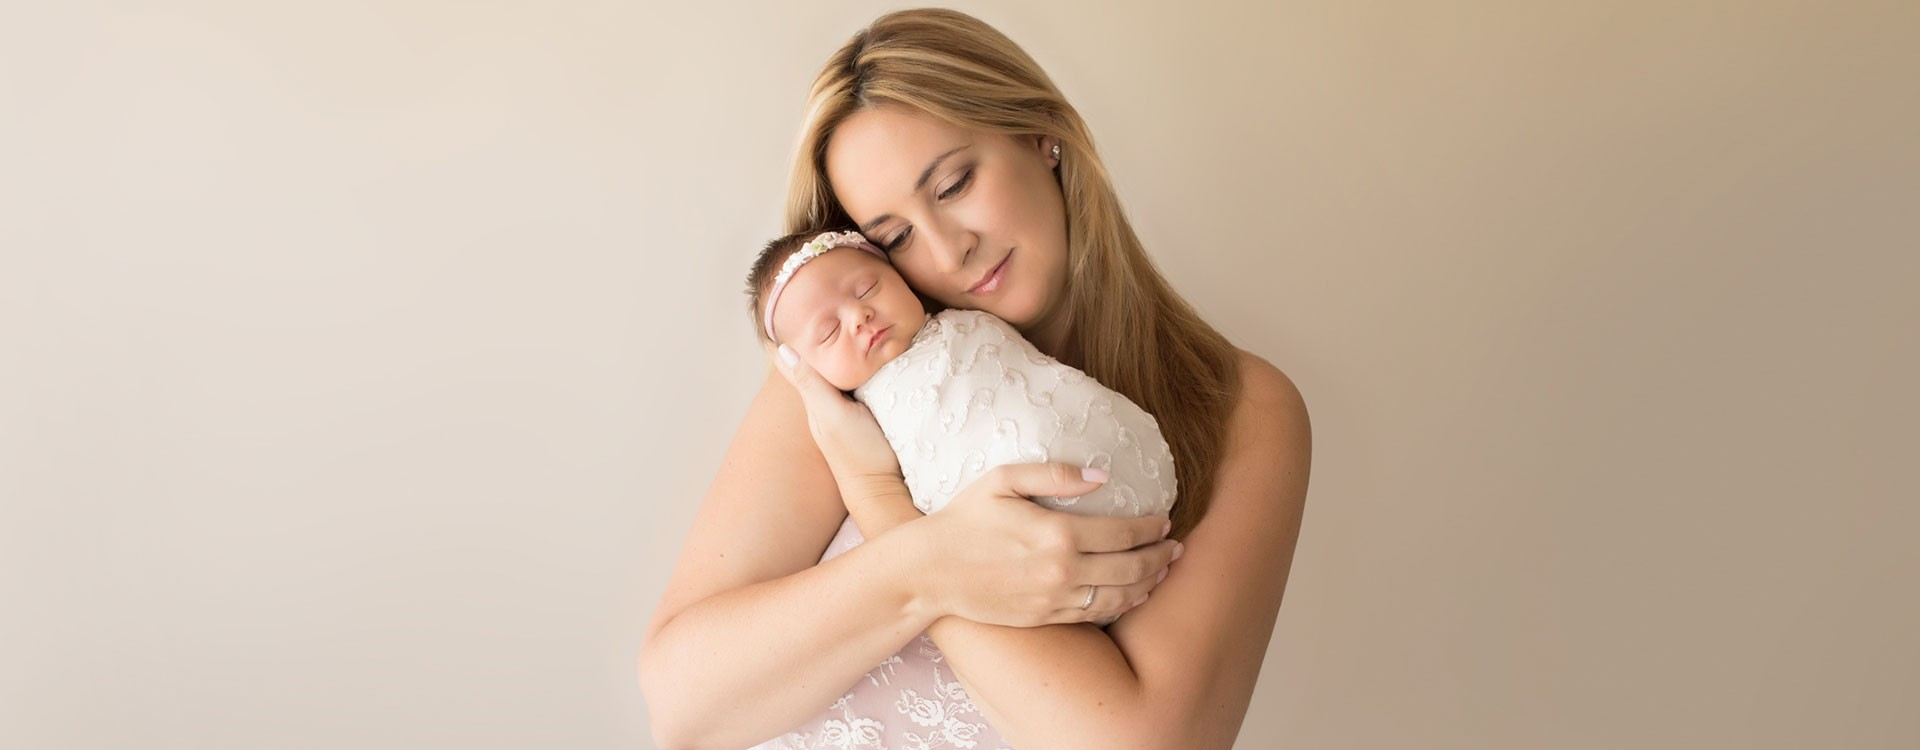 Gorgeous Mom in pink lace cuddling newborn girl wrapped in lace cream photos Gainesville FLorida